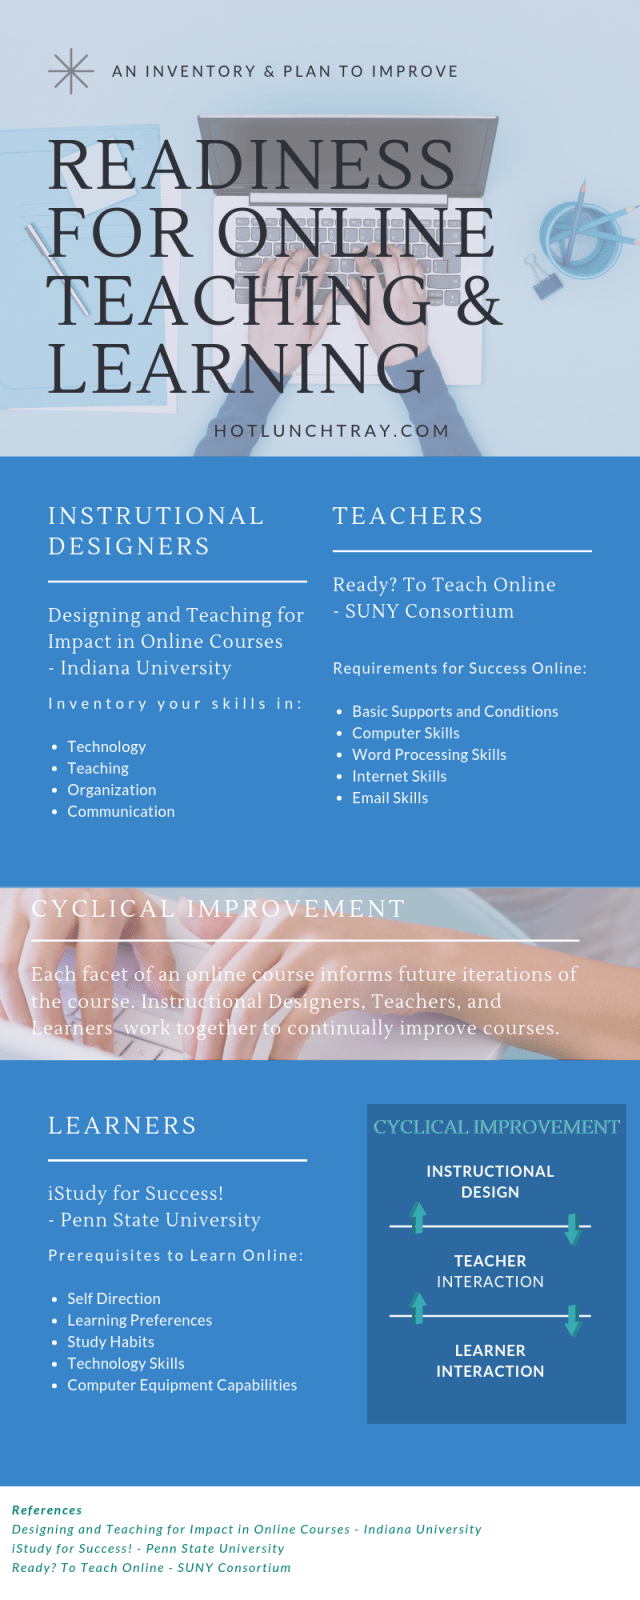 INFOGRAPHIC: Readiness for Online Teaching & Learning